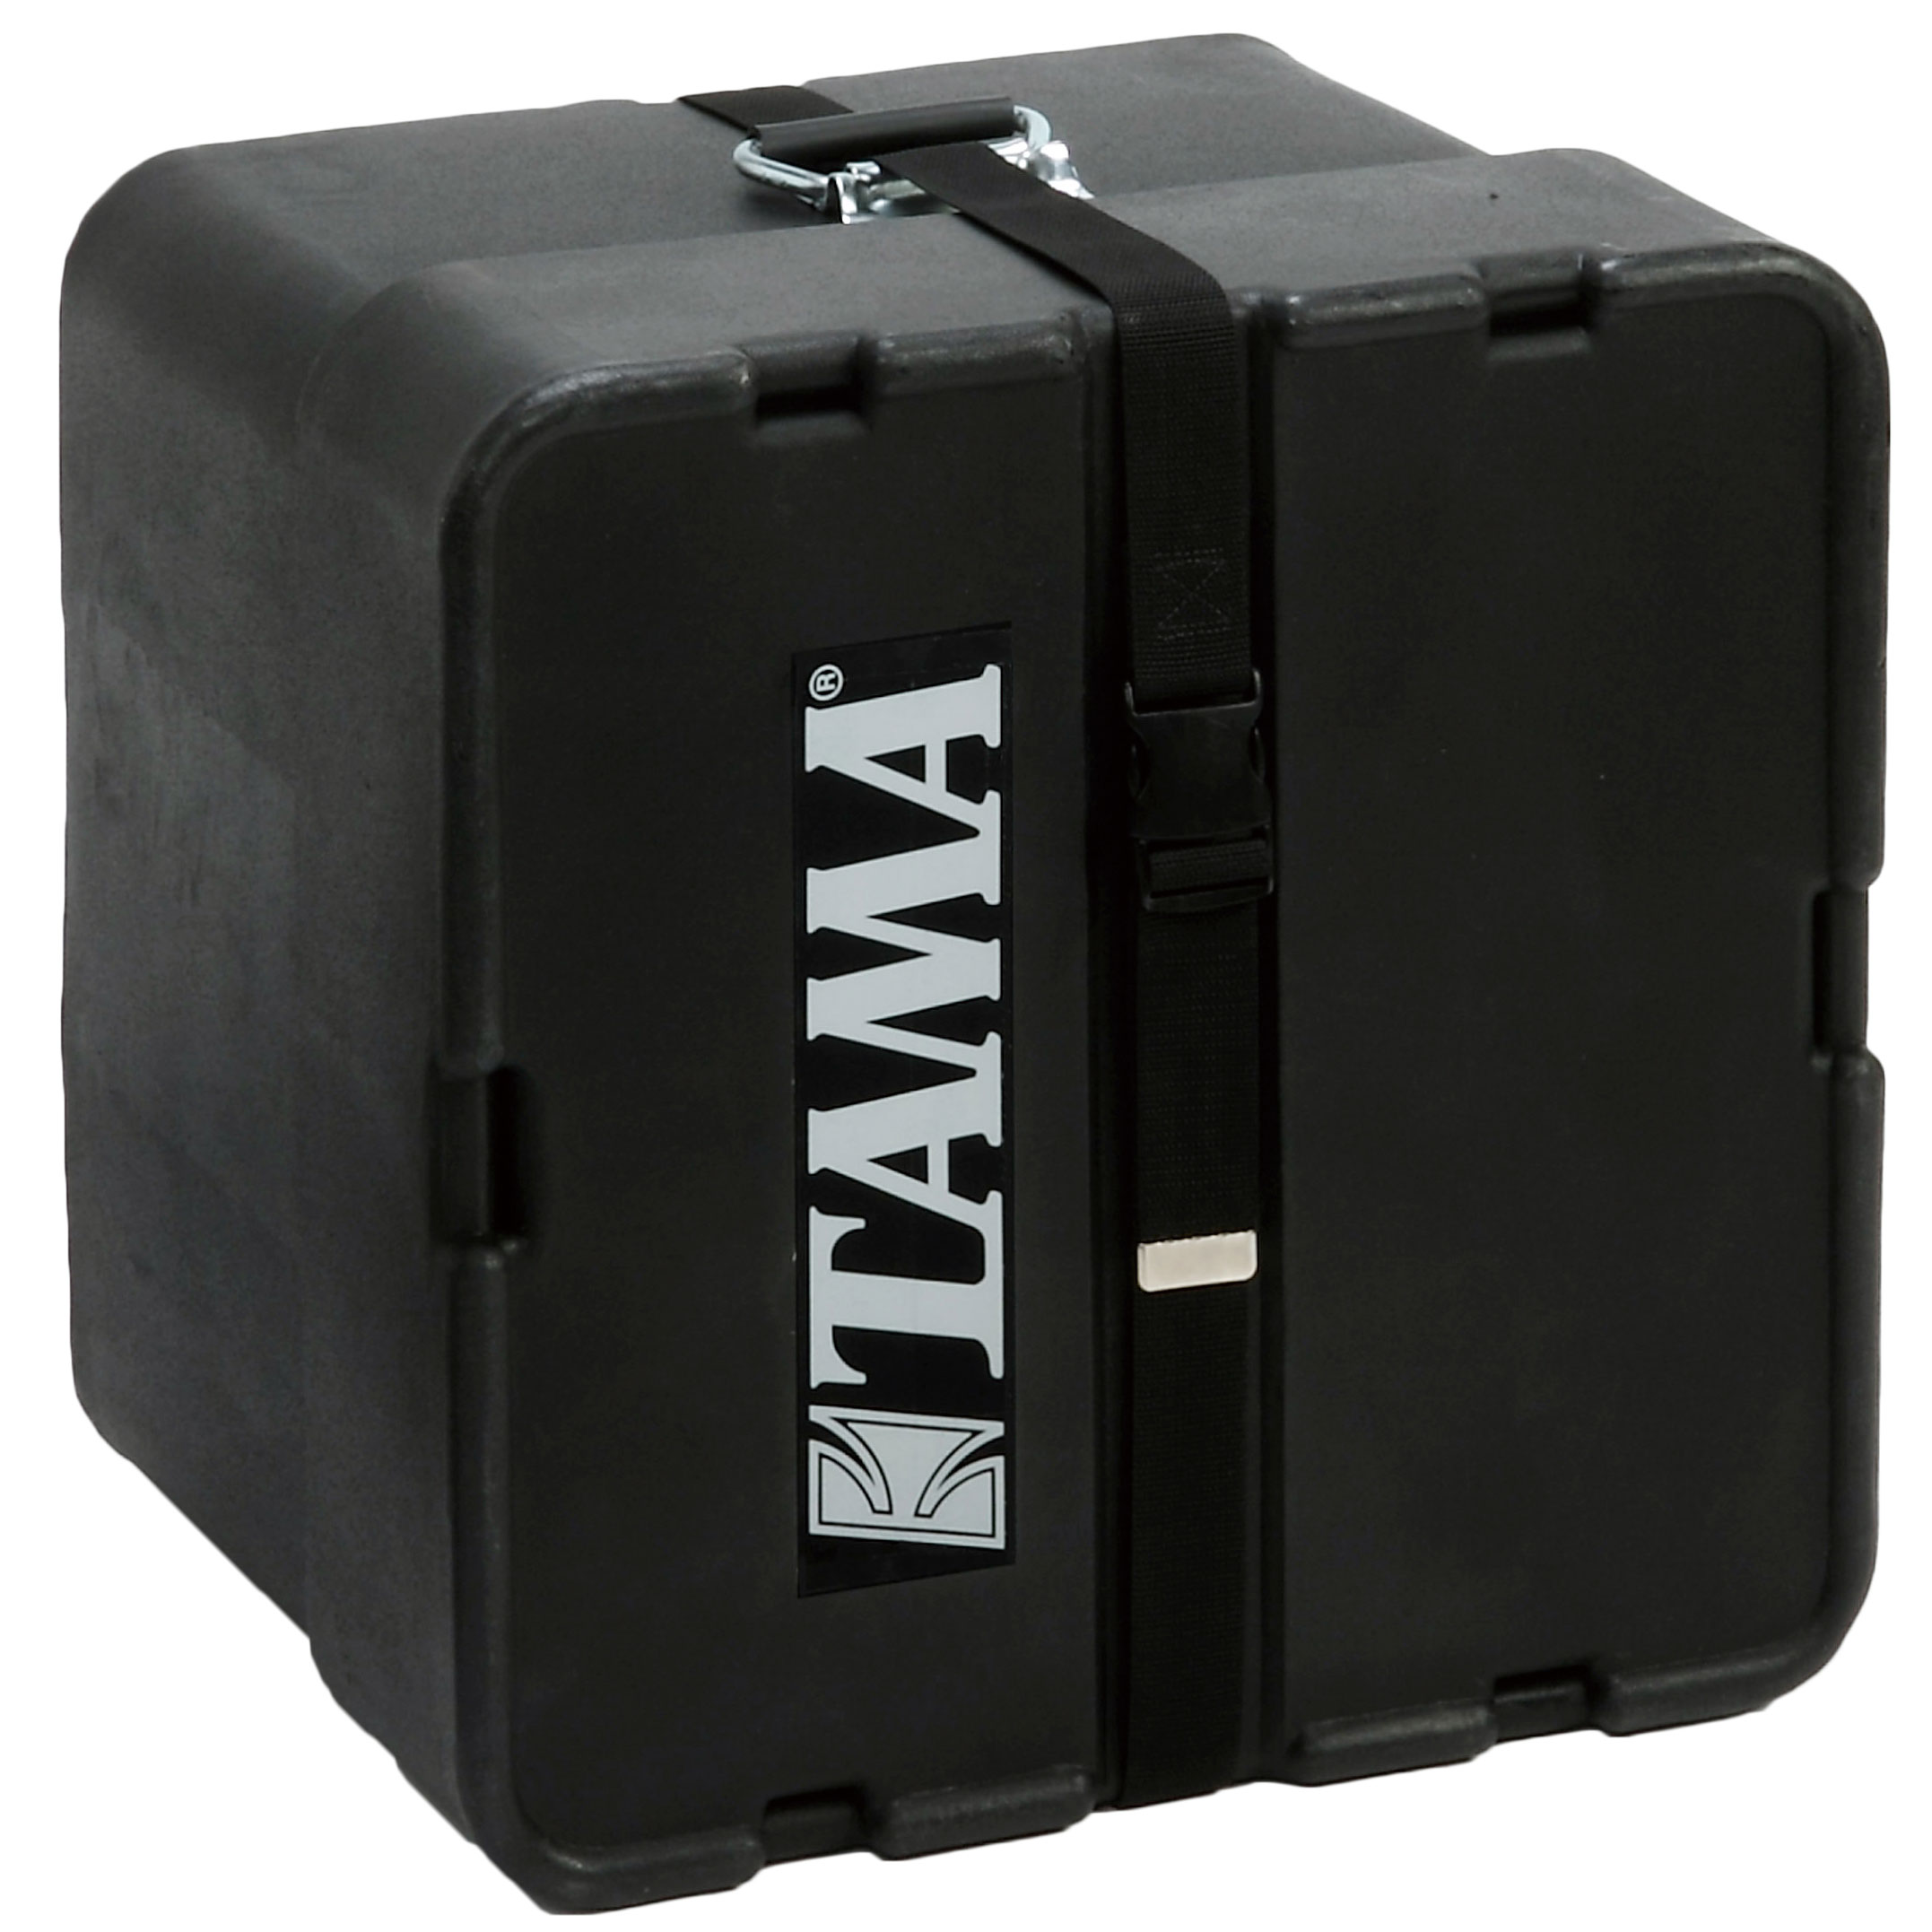 "Tama 12"" (Deep) x 14"" (Diameter) Marching Snare Case"